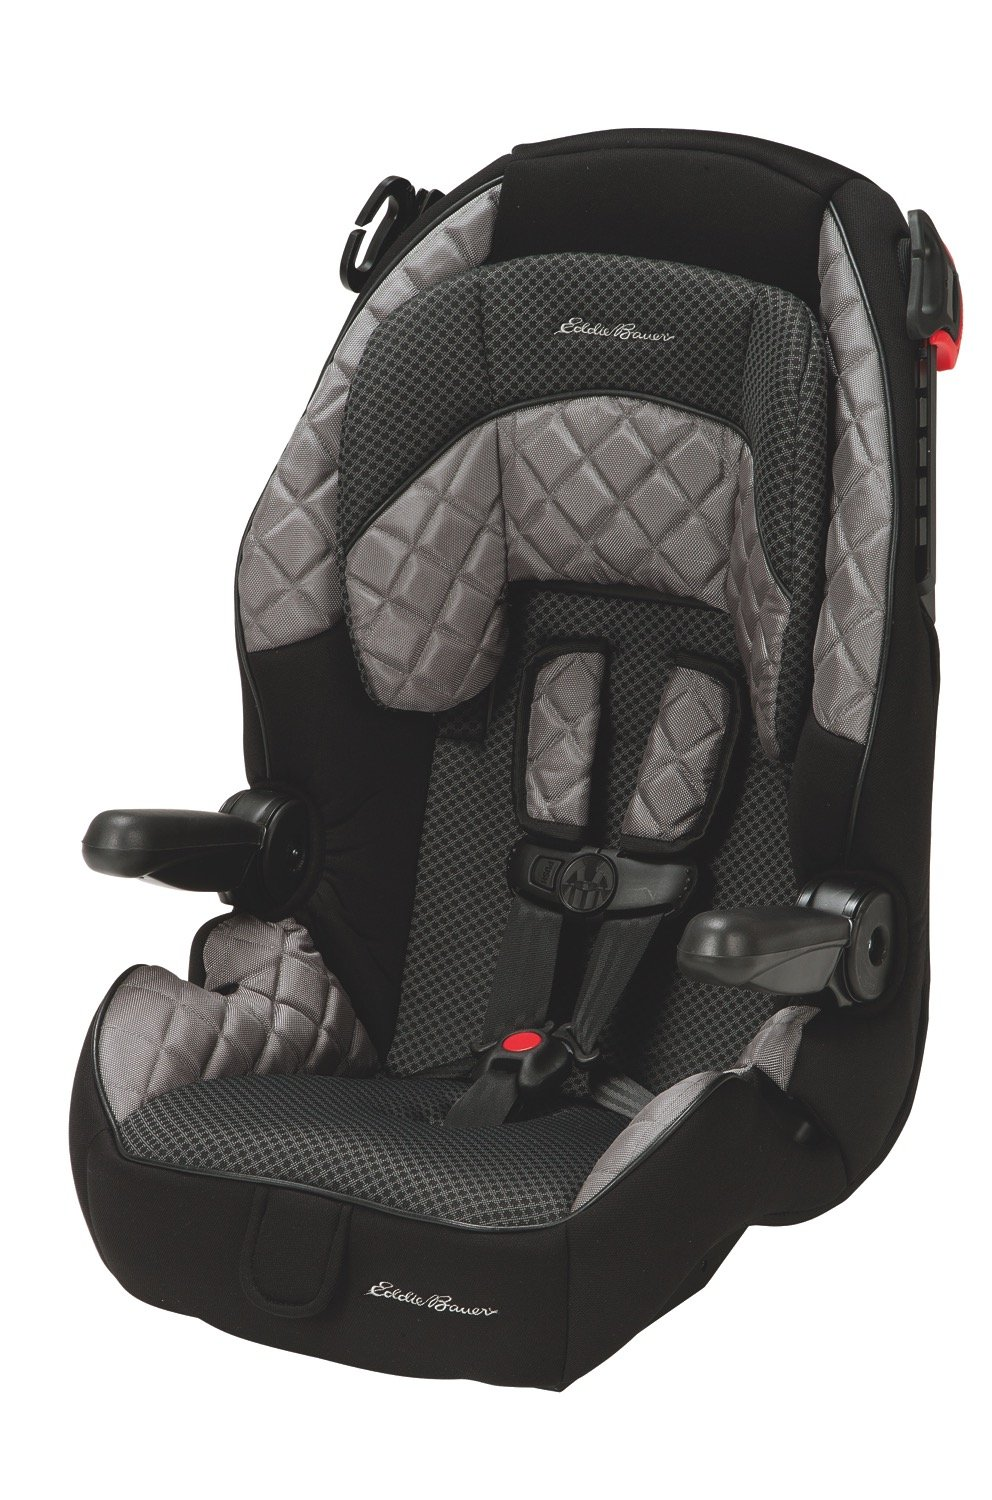 Parts for car seats likewise graco replacement parts for car - Eddie Bauer Deluxe High Back 65 Child Restraint And High Back Booster Hunnicut Grey Black Amazon Ca Baby